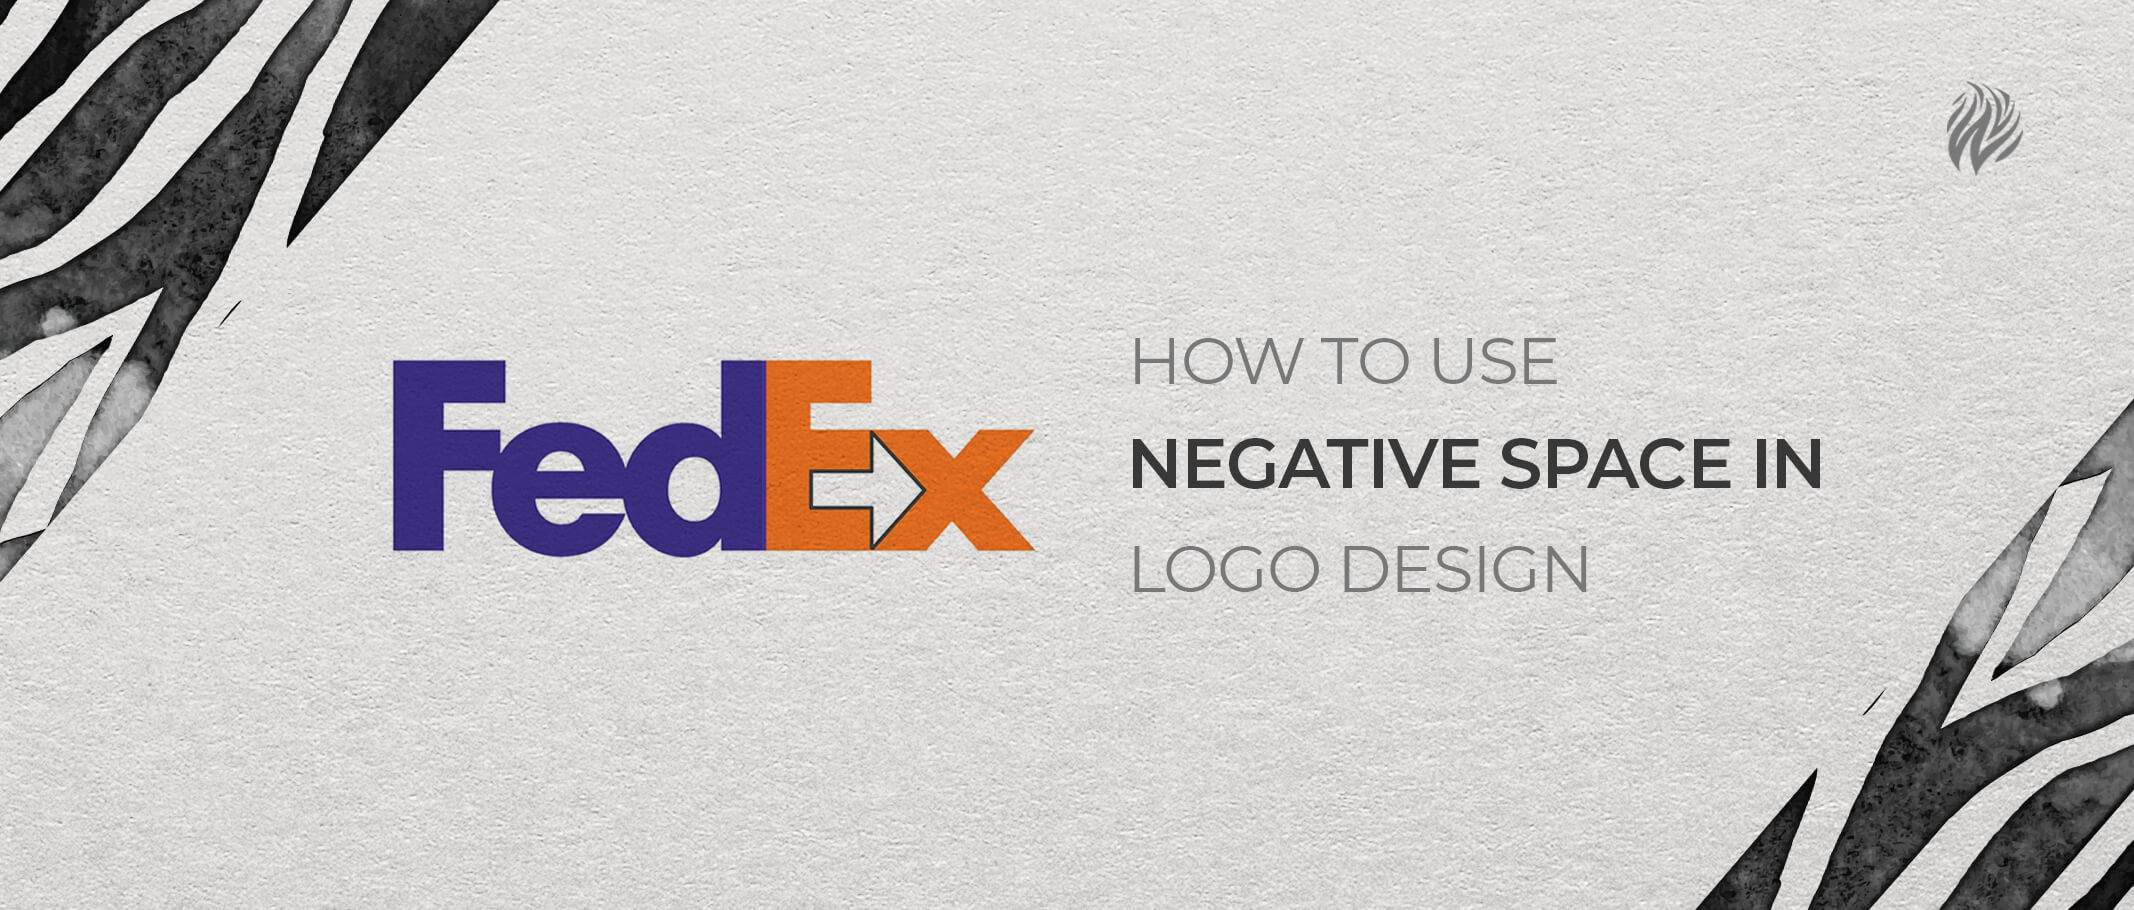 How to use negative space in logo design